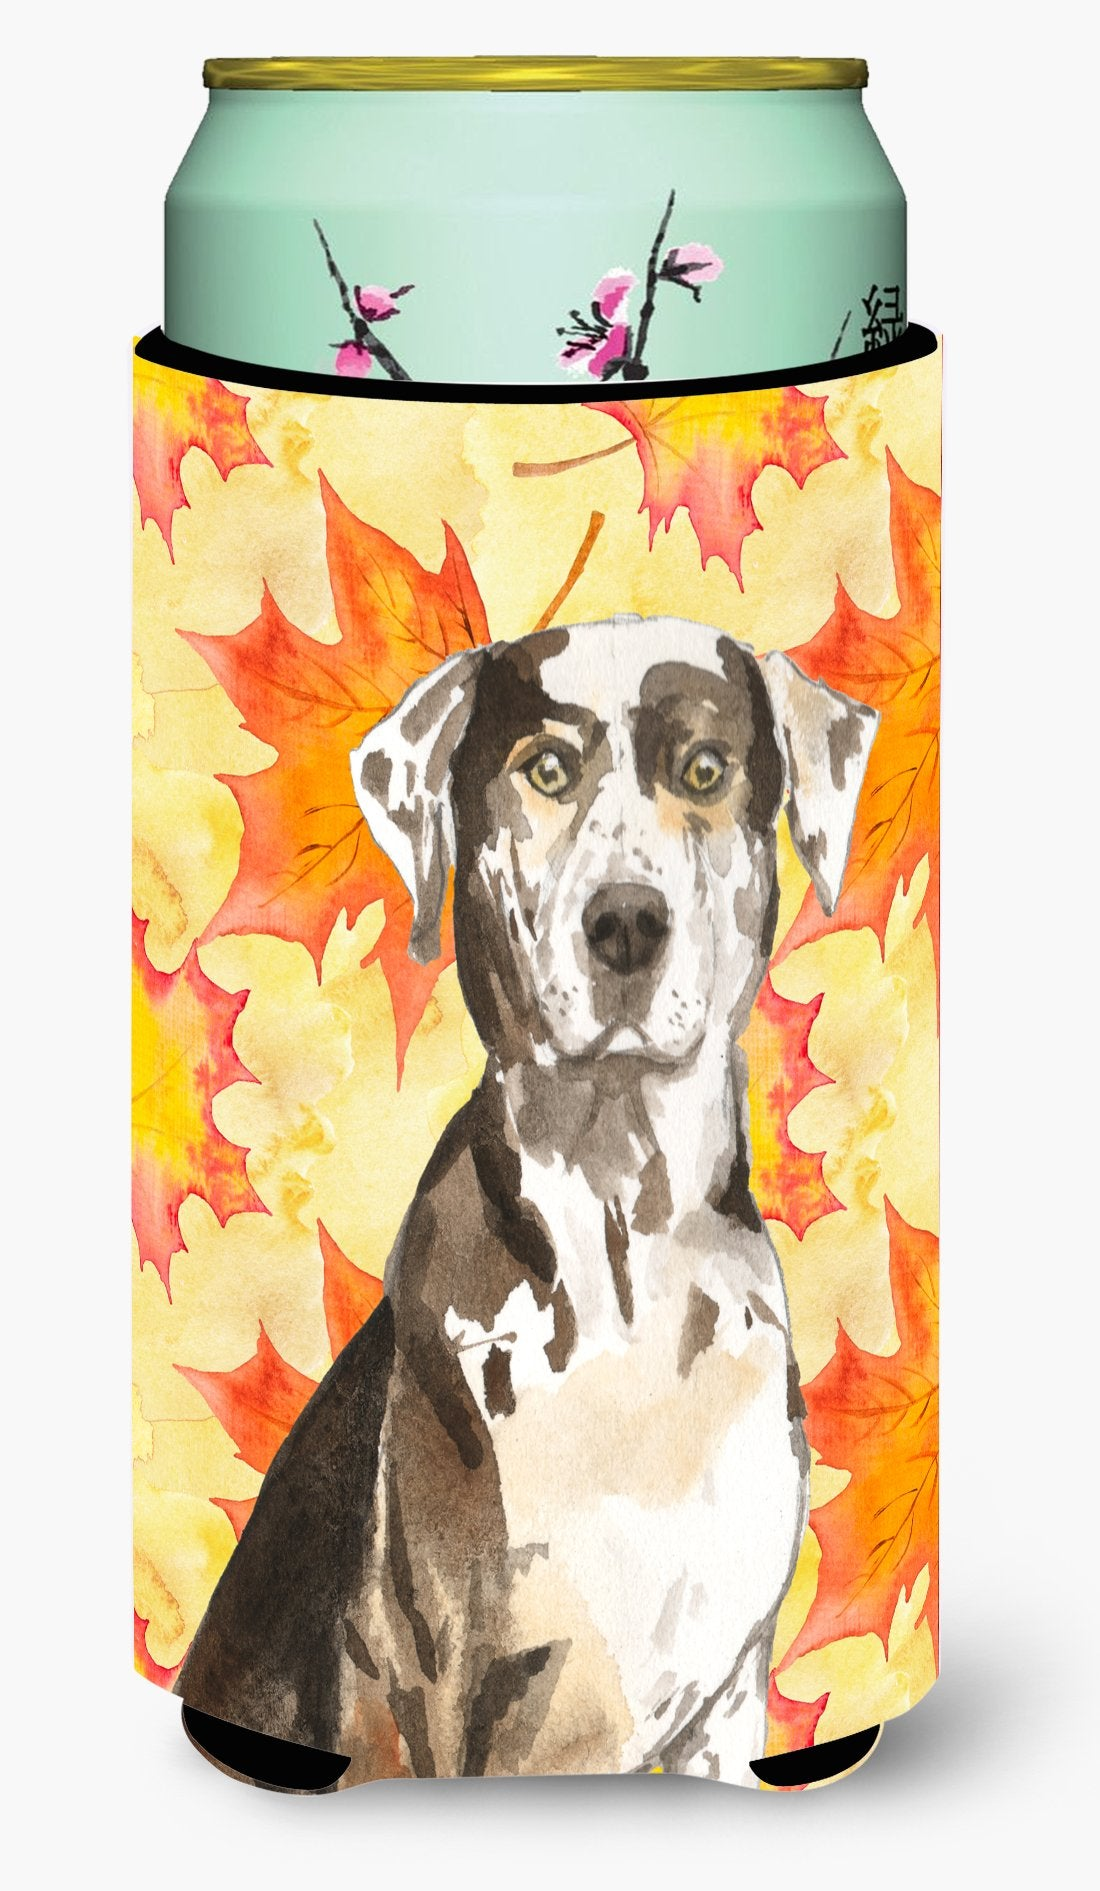 Fall Leaves Catahoula Leopard Dog Tall Boy Beverage Insulator Hugger CK1845TBC by Caroline's Treasures